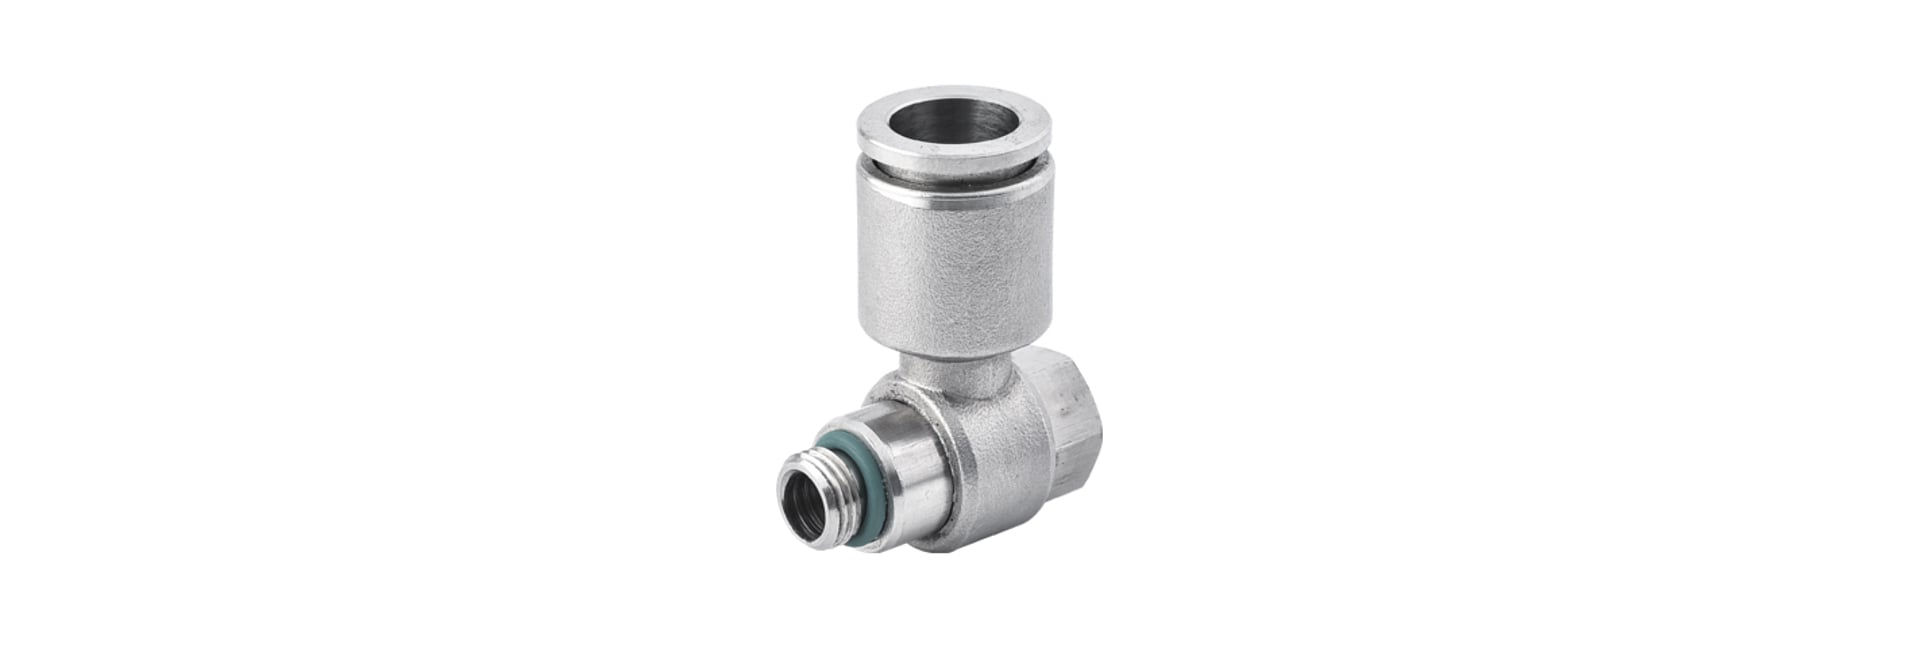 """SPH 1/4-M5, 1/4"""" O.D Tubing, M5 x 0.8 Male Banjo Elbow Connector, Stainless Steel Push to Connect Fitting"""